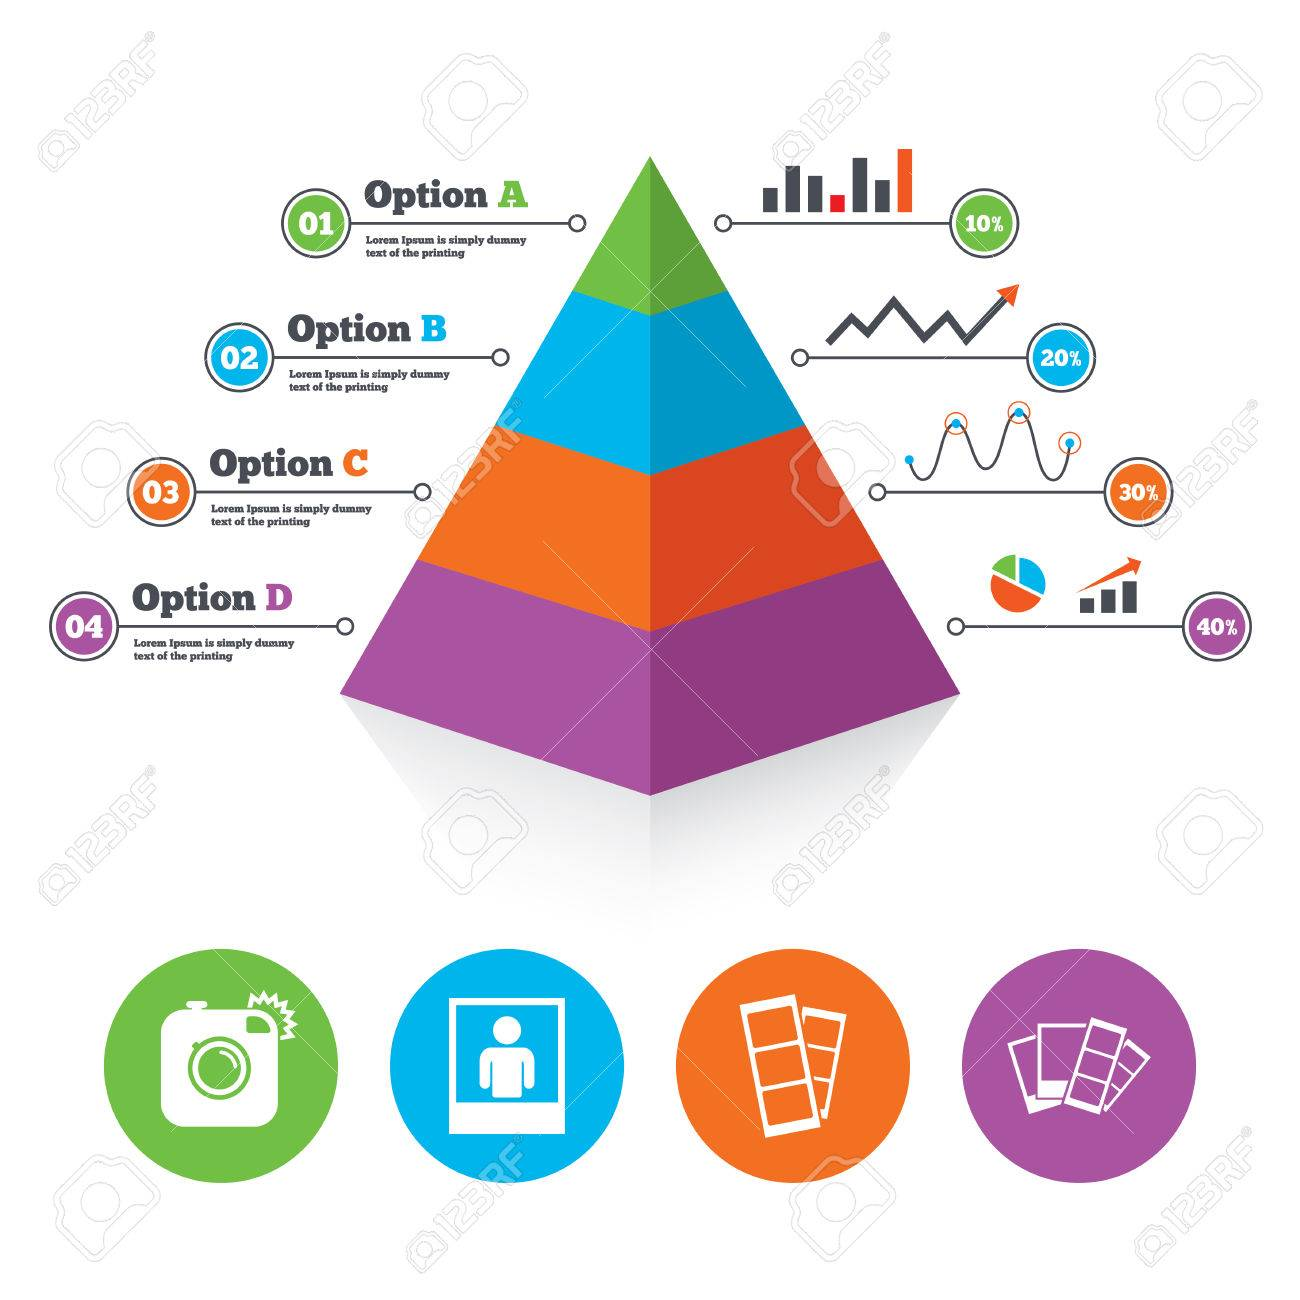 Po Booth Templates | Pyramid Chart Template Hipster Photo Camera Icon Flash Light